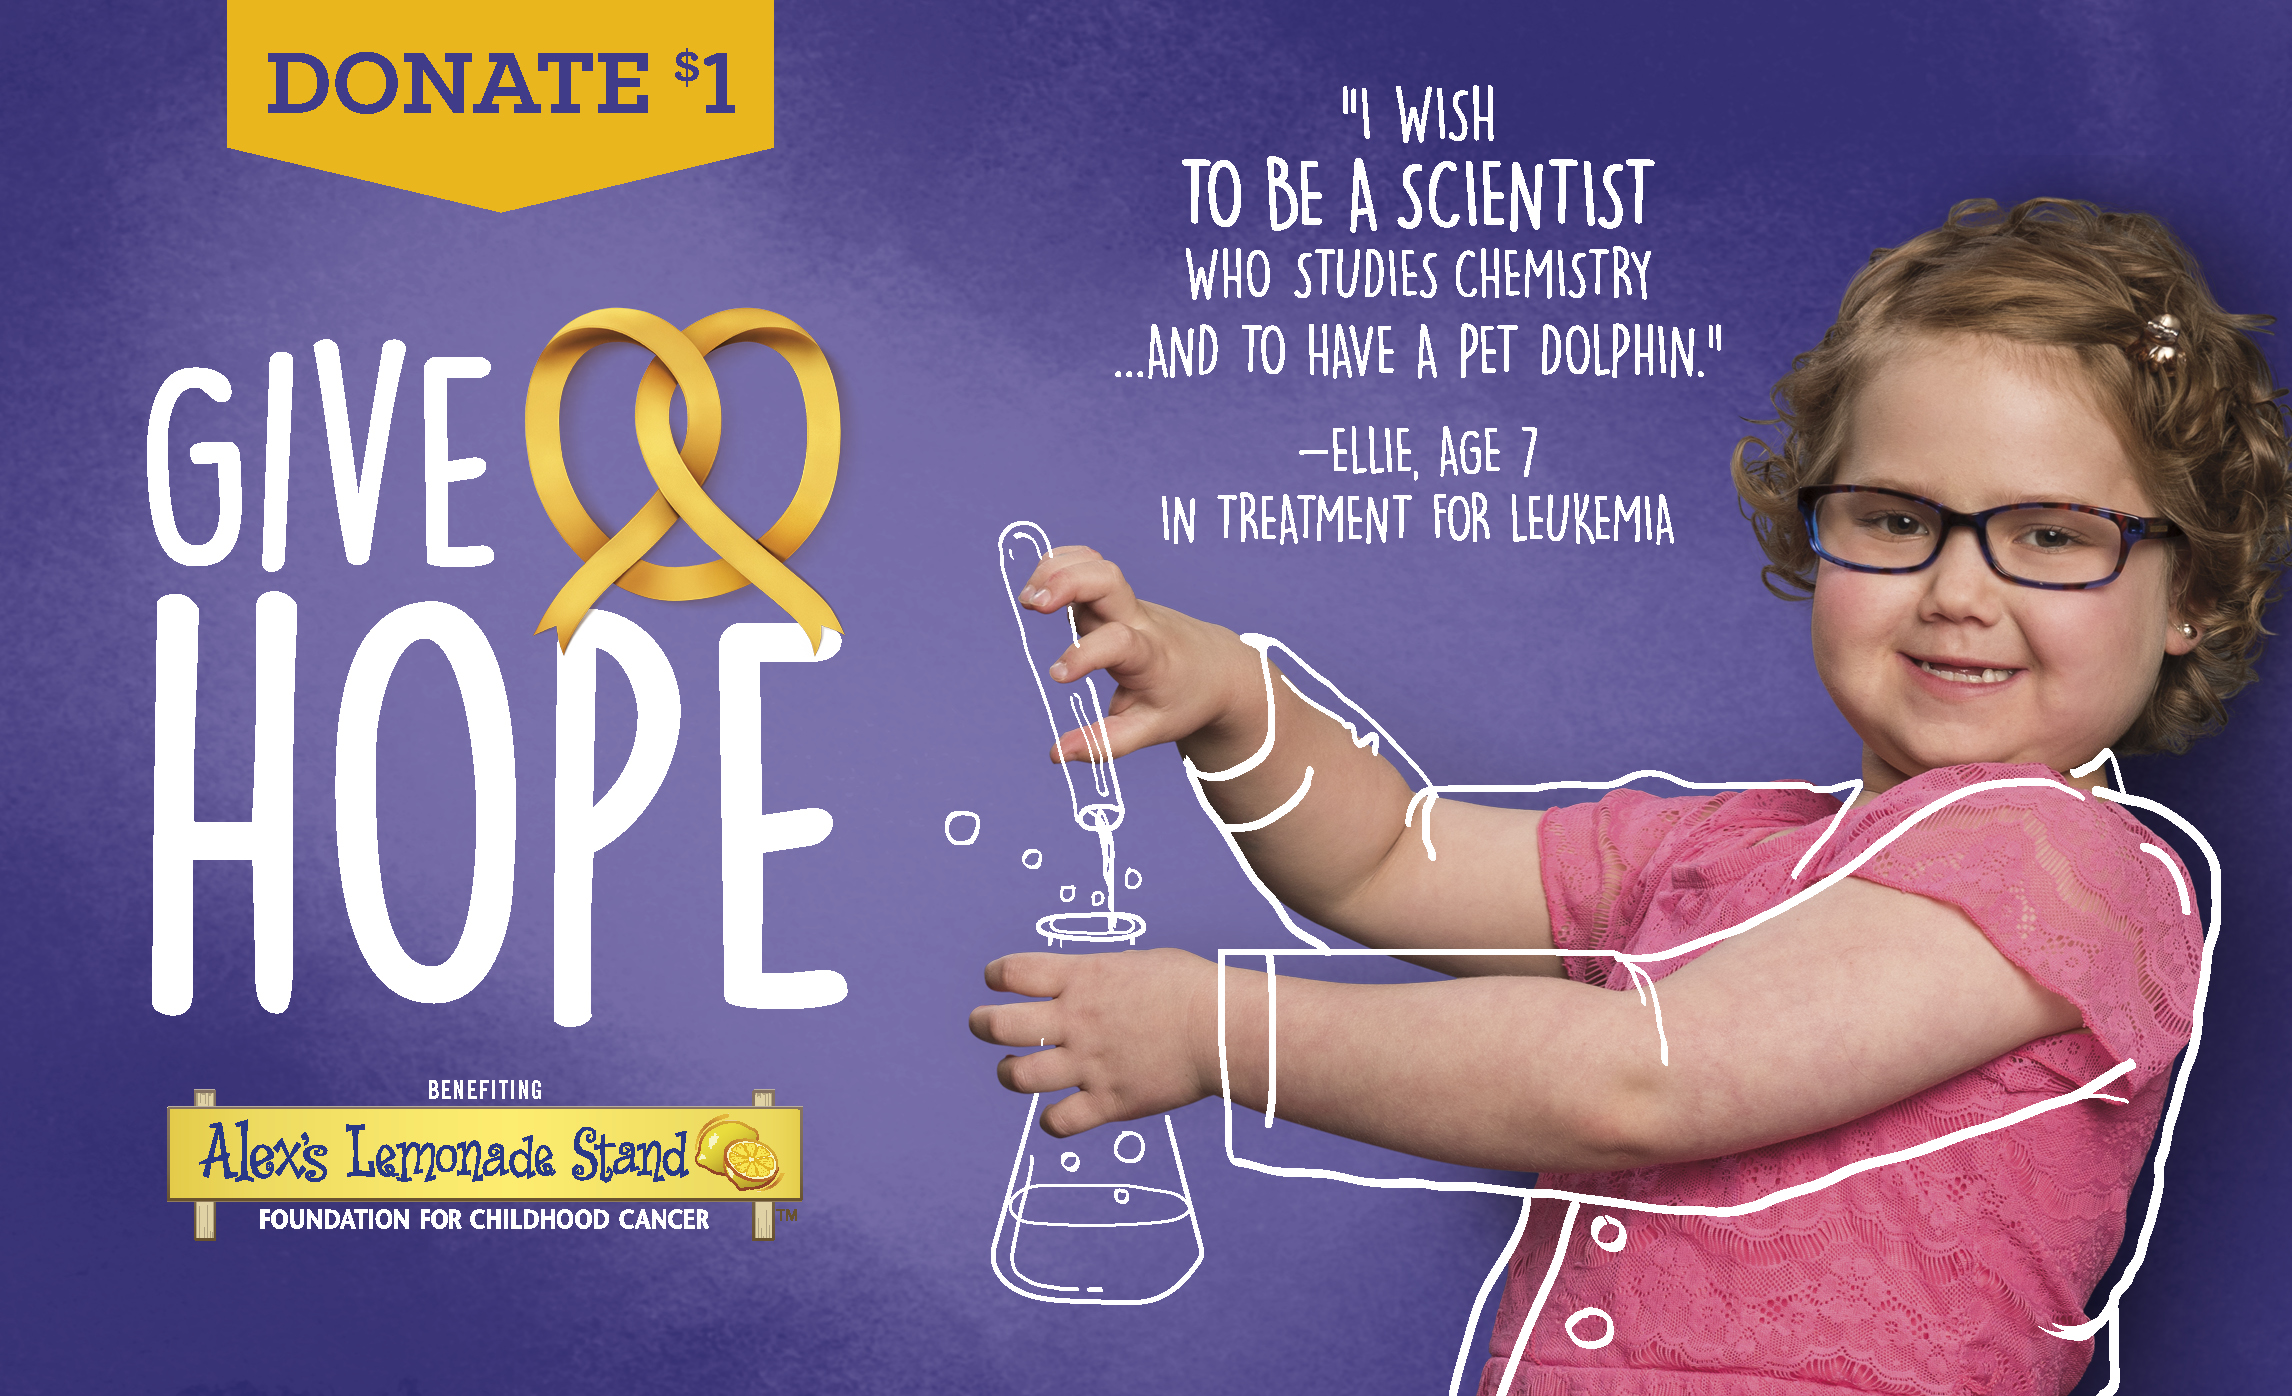 Auntie Anne's® announces fundraising event on National Lemonade Day in support of Alex's Lemonade Stand Foundation